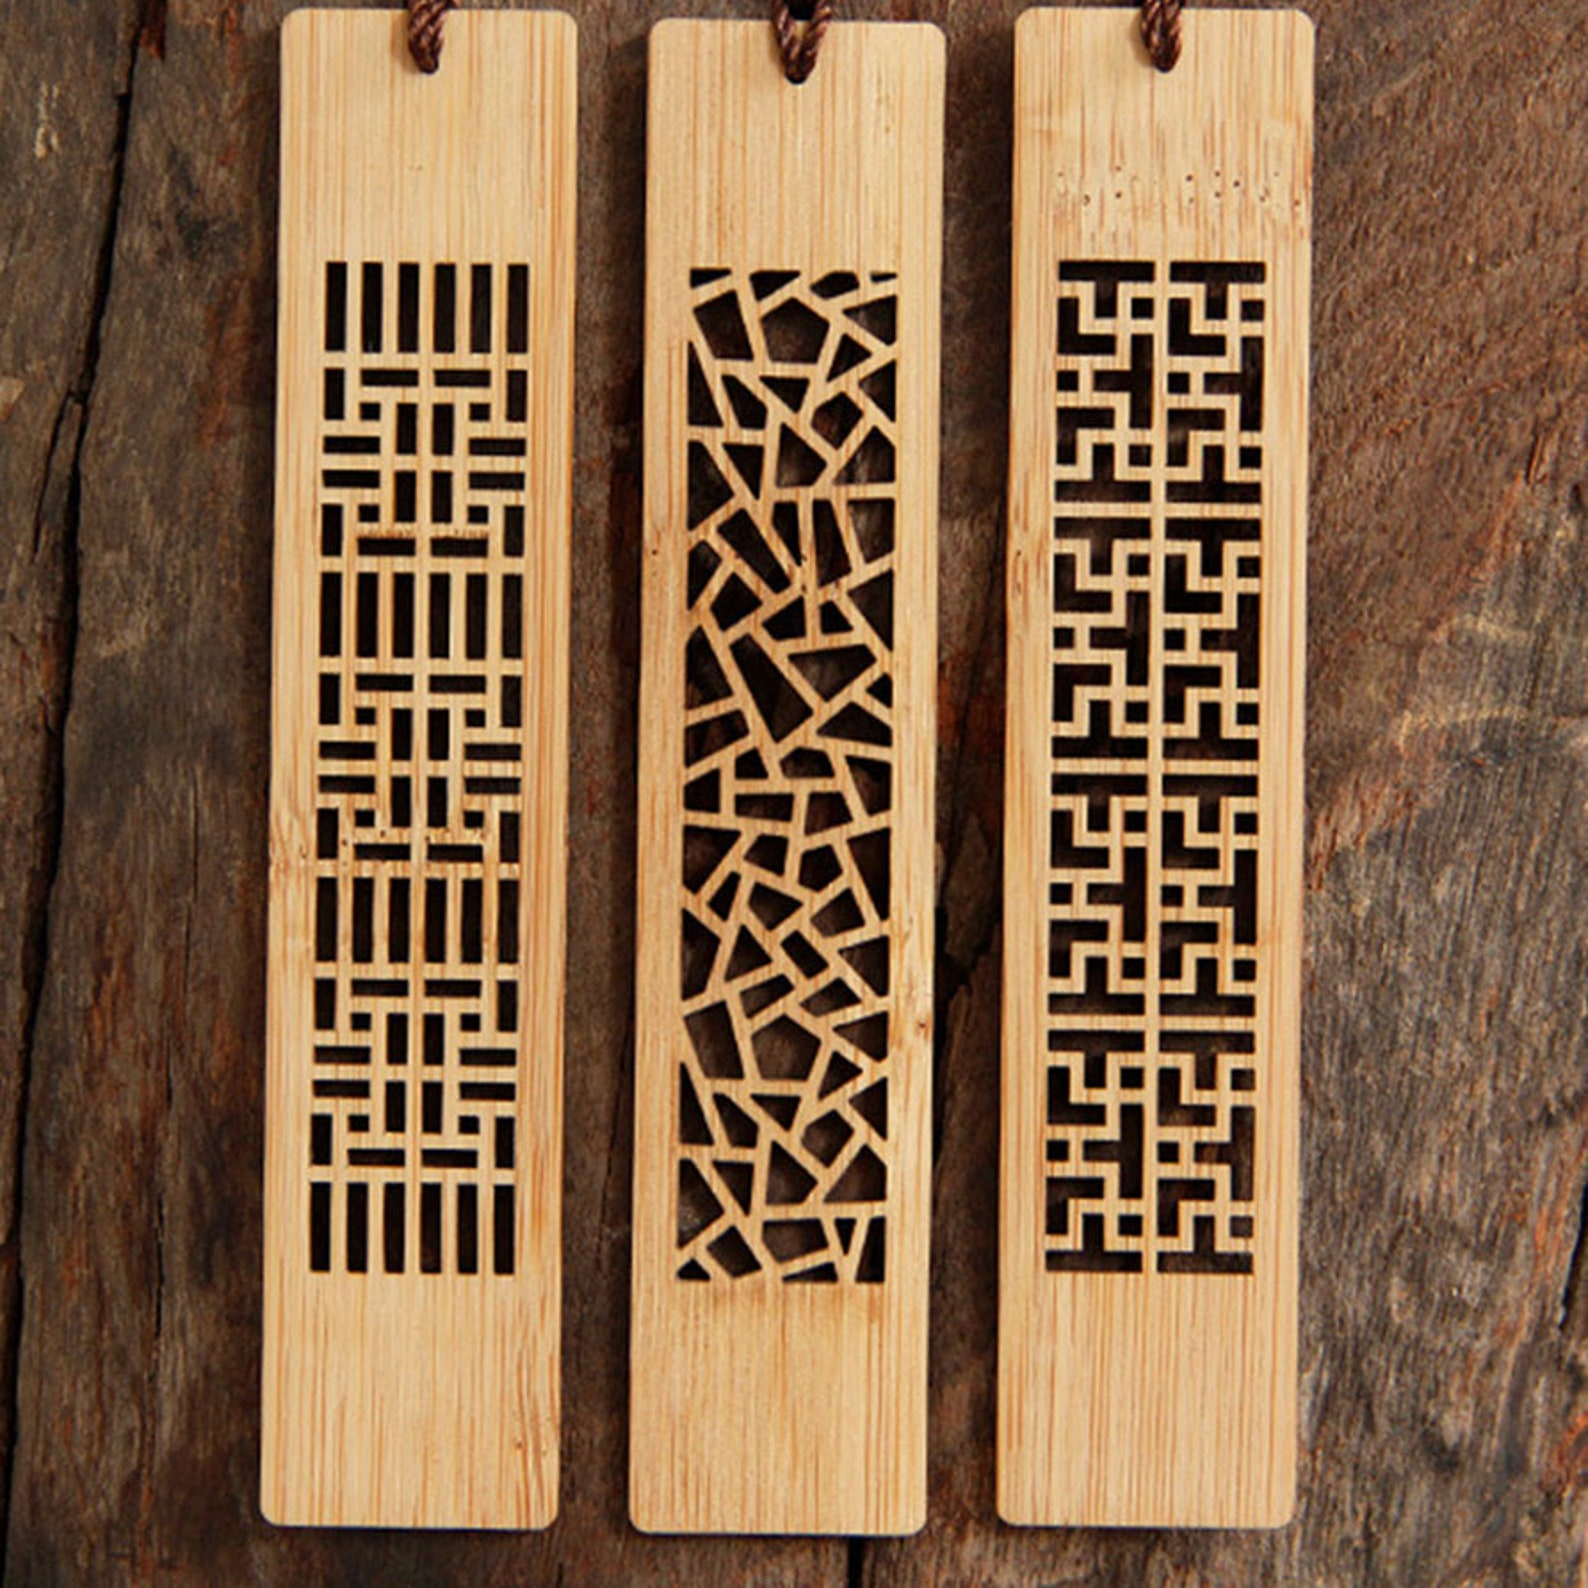 Carved bookmarks